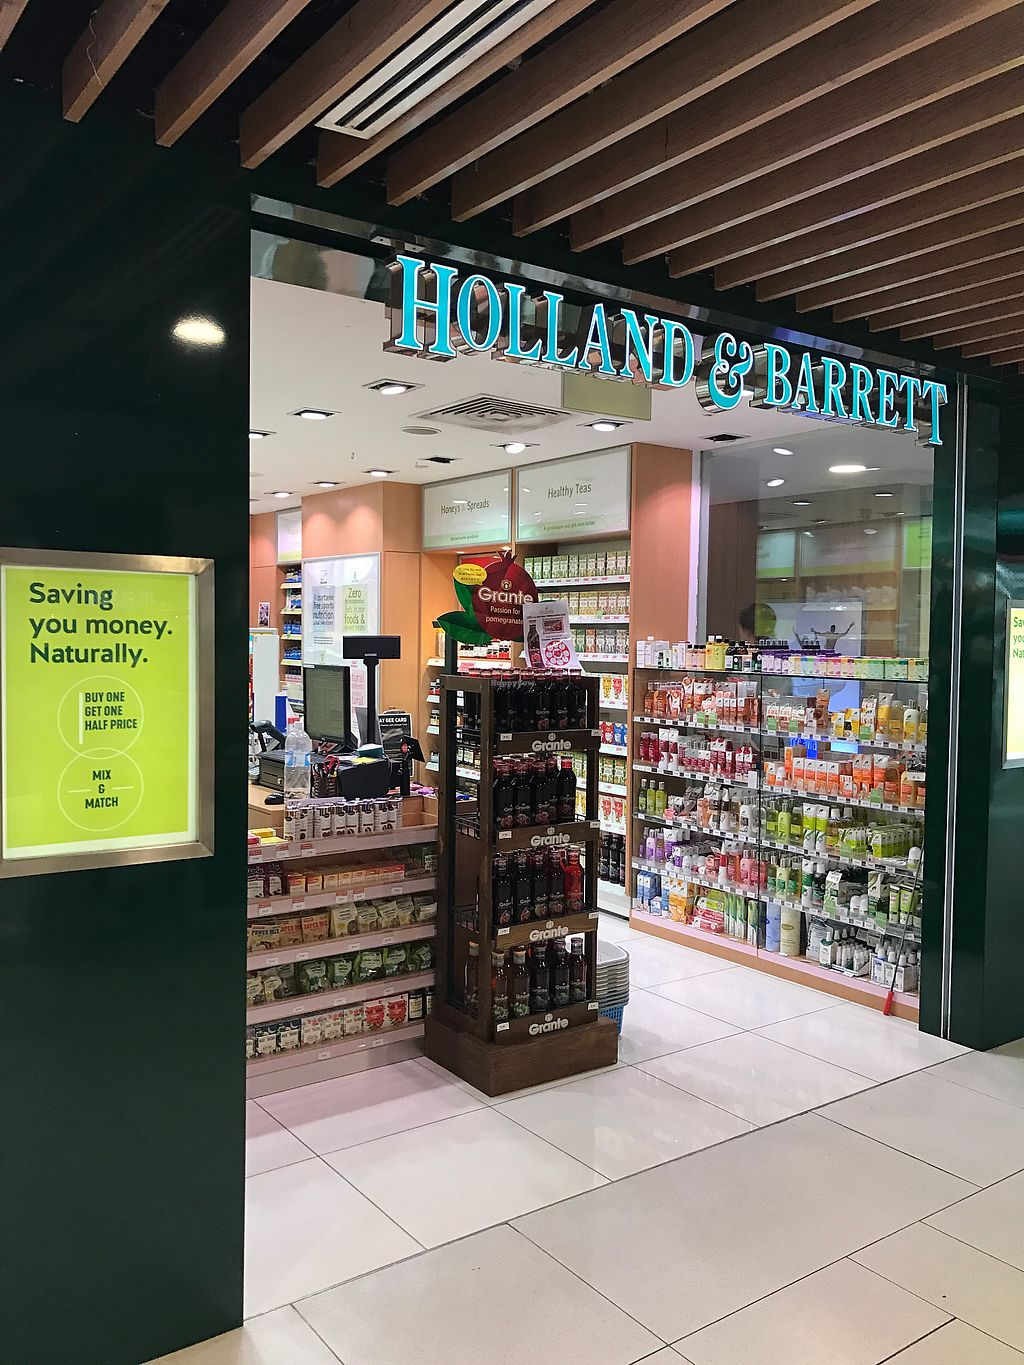 """Photo of Holland & Barrett - White Sands  by <a href=""""/members/profile/kkylaye"""">kkylaye</a> <br/>store front  <br/> March 11, 2018  - <a href='/contact/abuse/image/113978/369151'>Report</a>"""